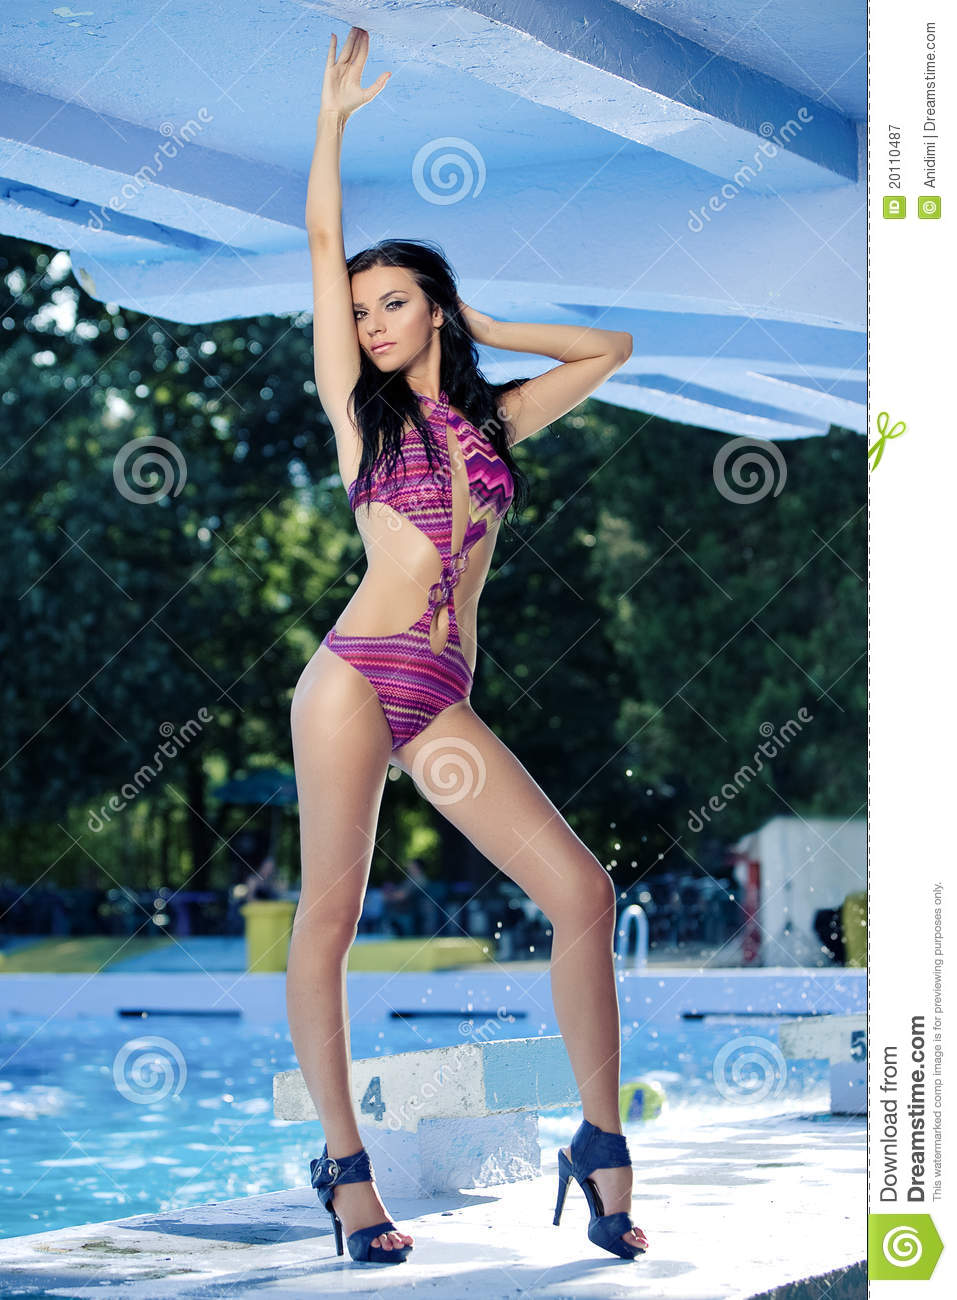 Attractive young woman at a pool